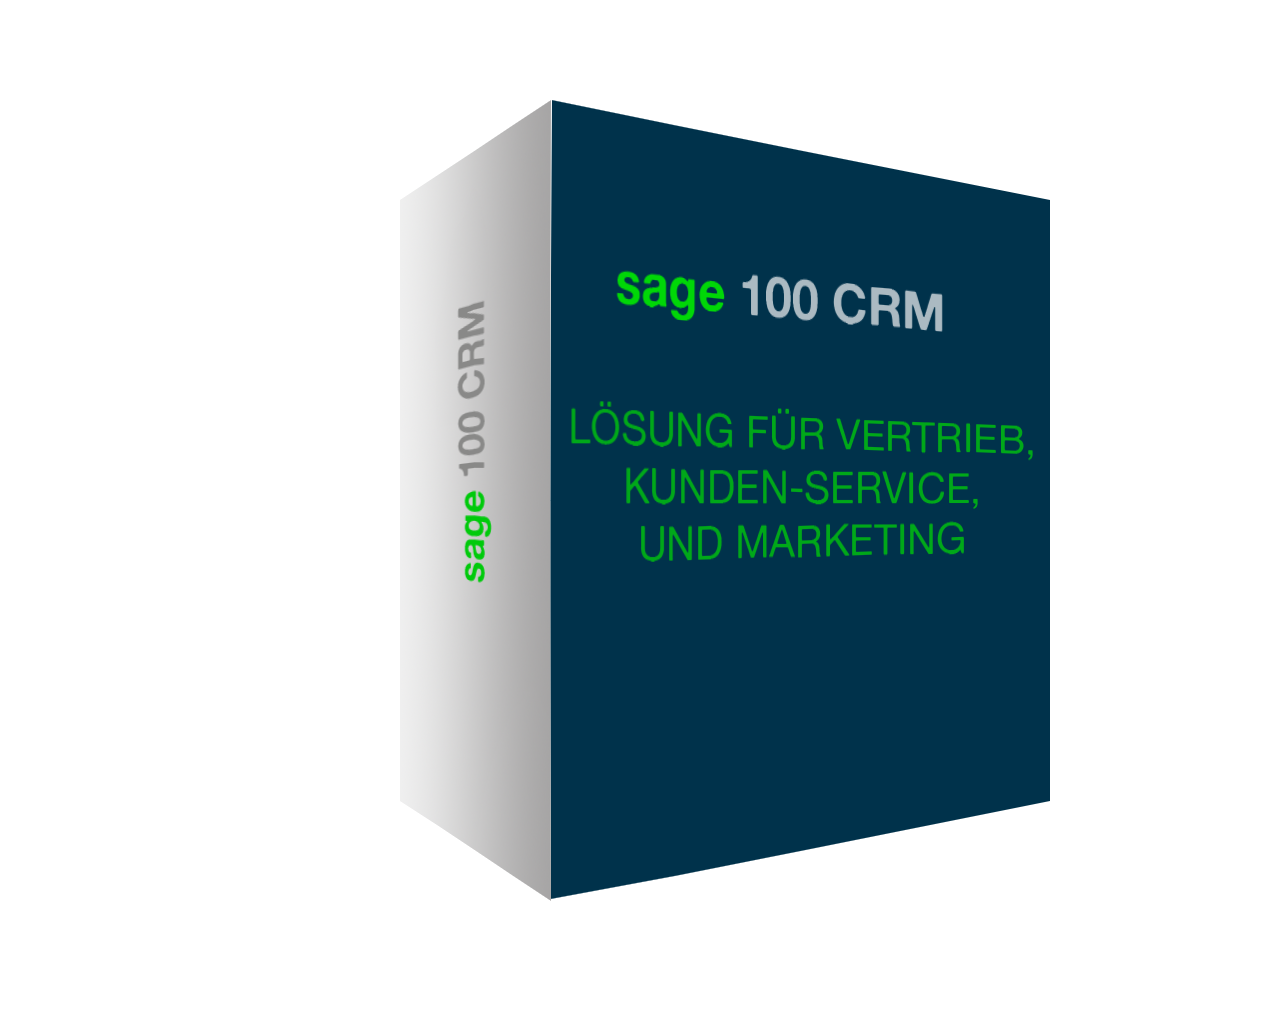 brainsolution Software AG - Sage 100 CRM